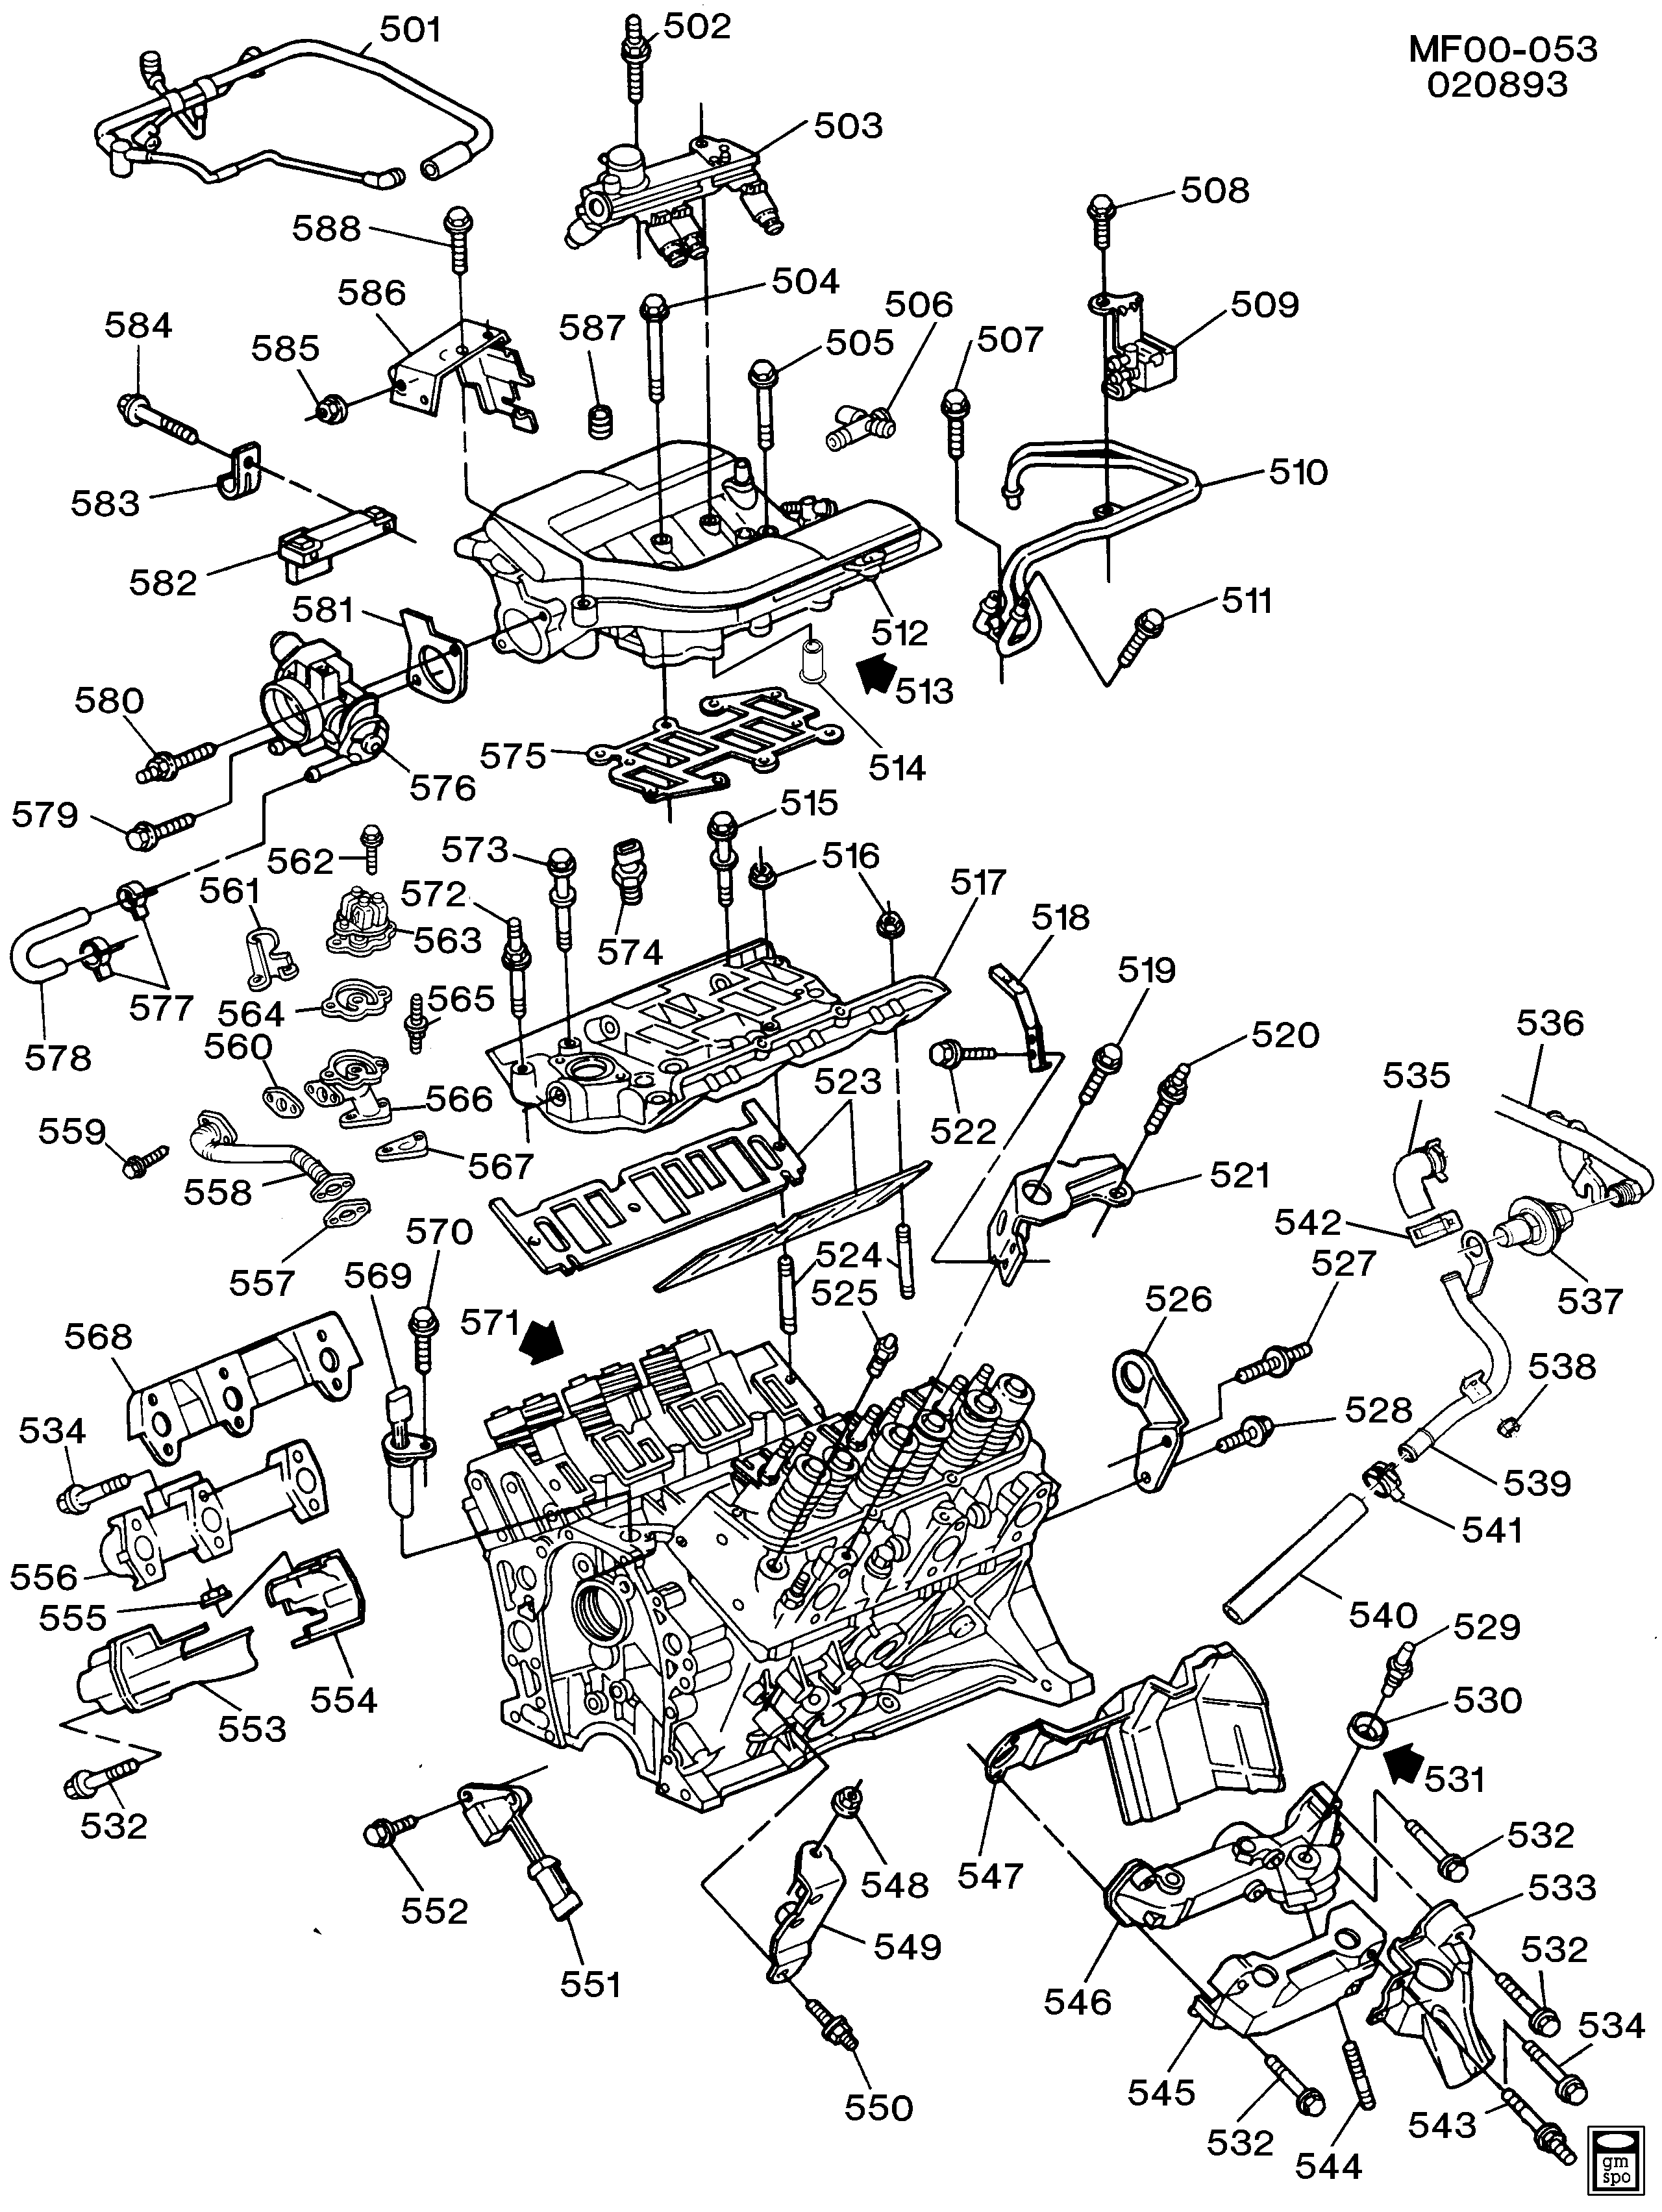 [QNCB_7524]  95 Chevy Camaro Engine Diagram - Ring Circuit Wiring Diagram -  clubcars.lalu.decorresine.it | Camaro Engine Diagram |  | Wiring Diagram Resource